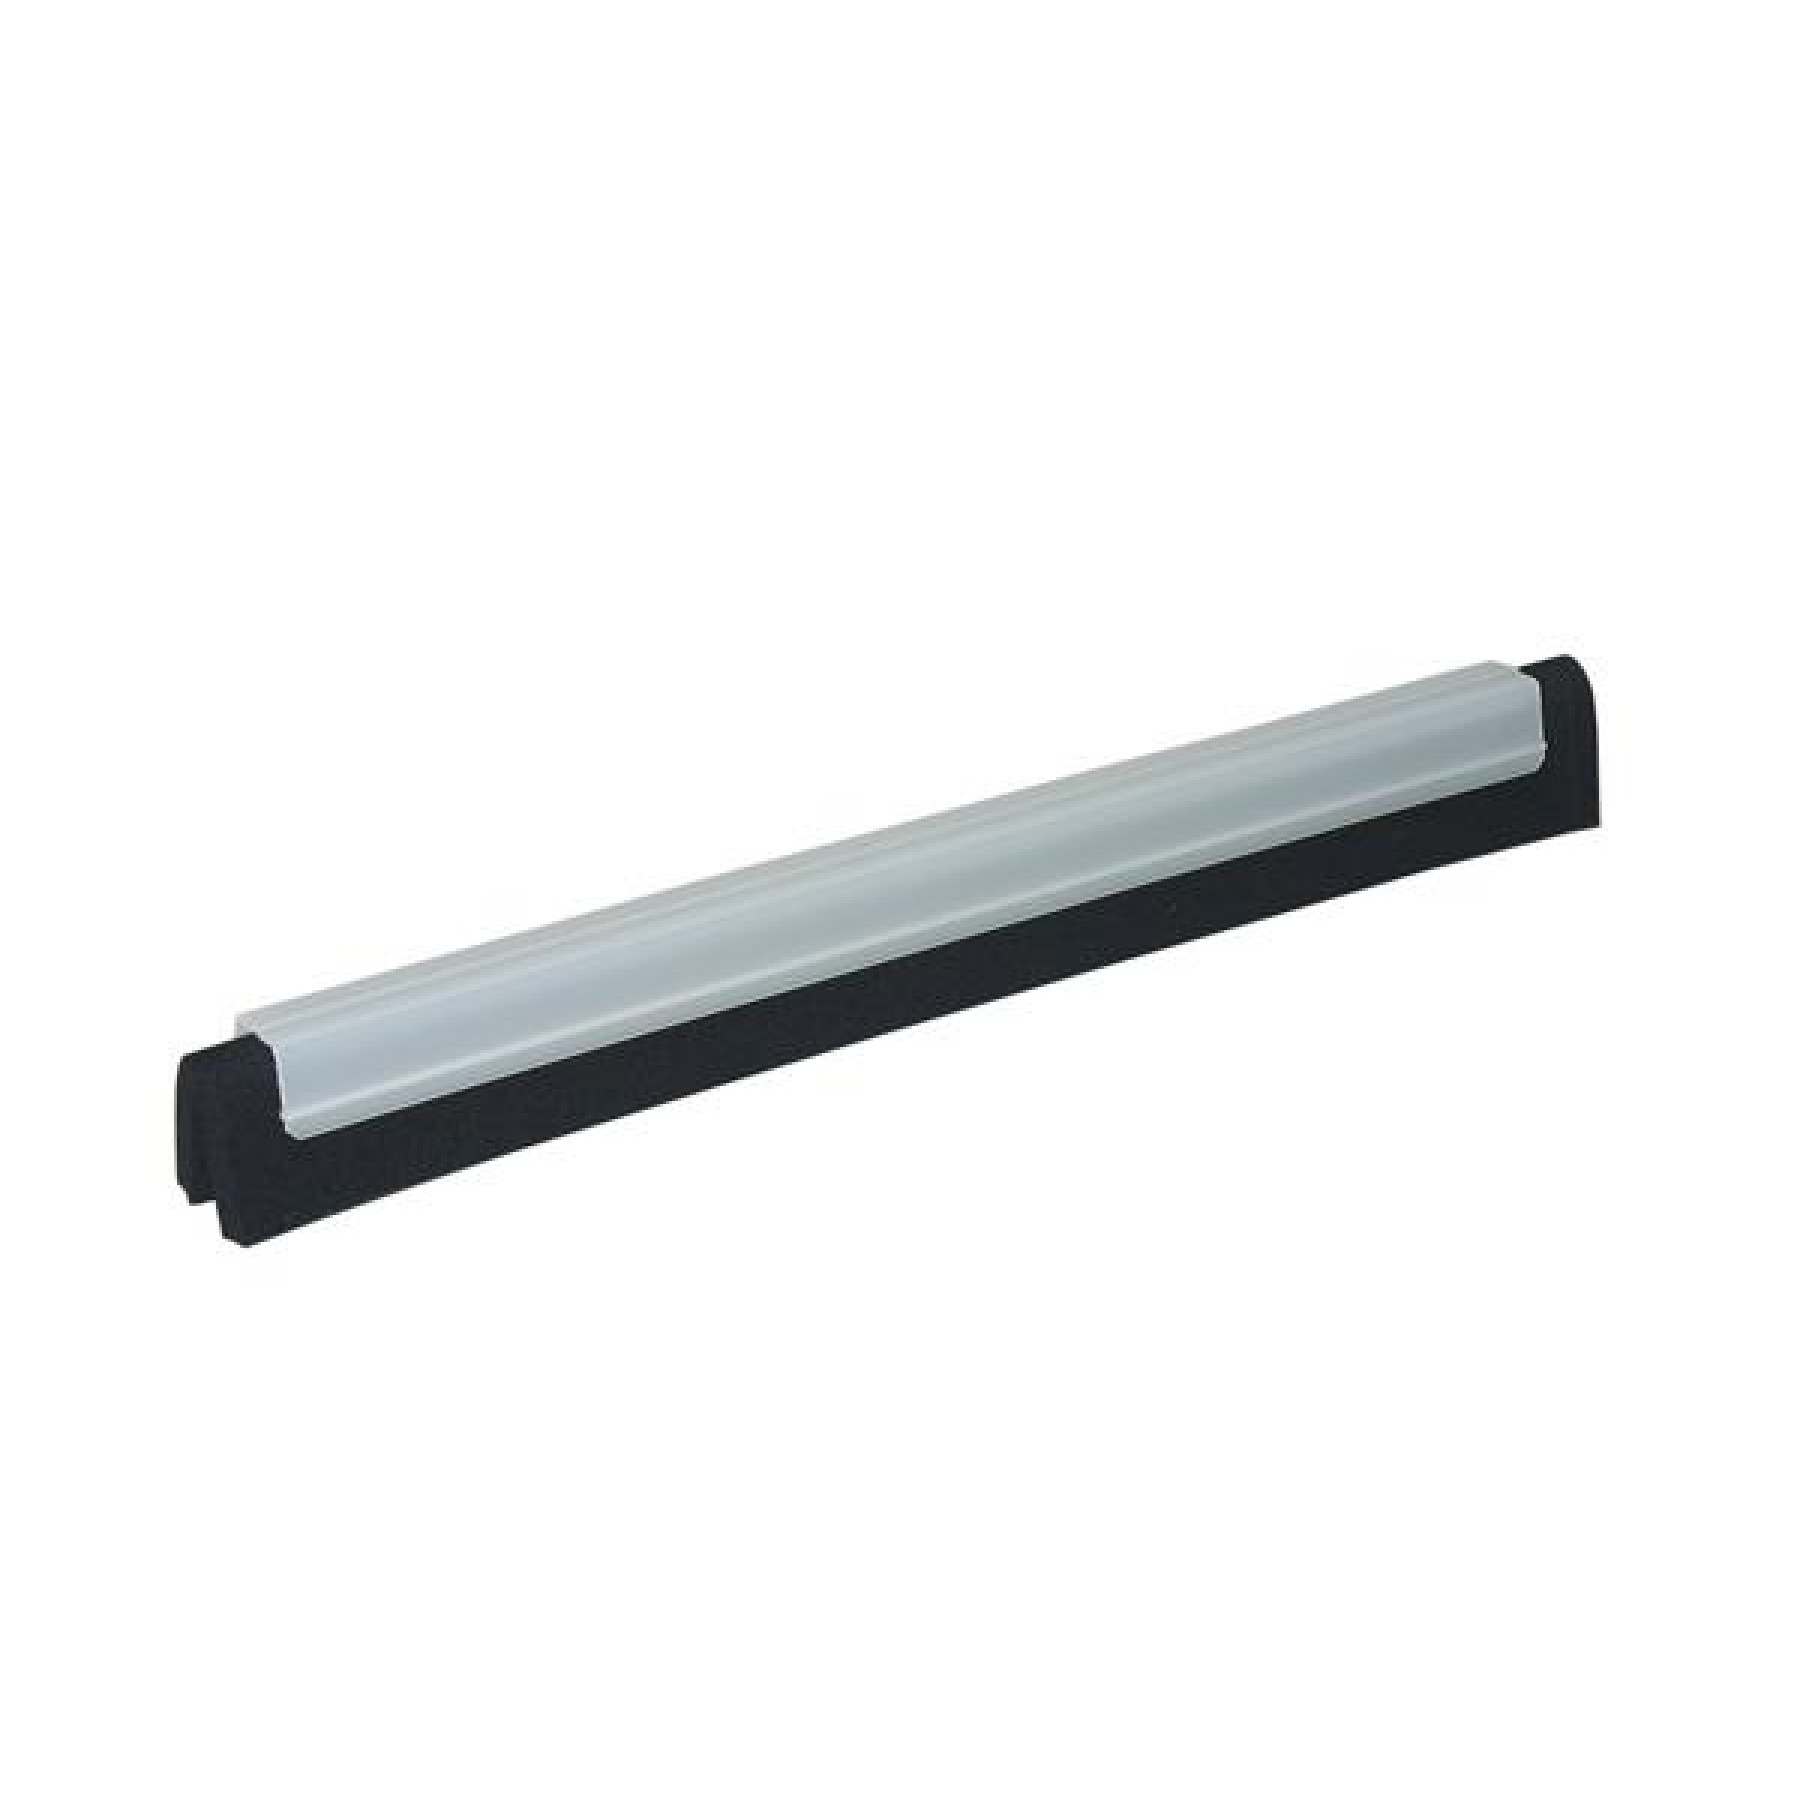 Vervangingscassette 400mm wit (voor oude serie)